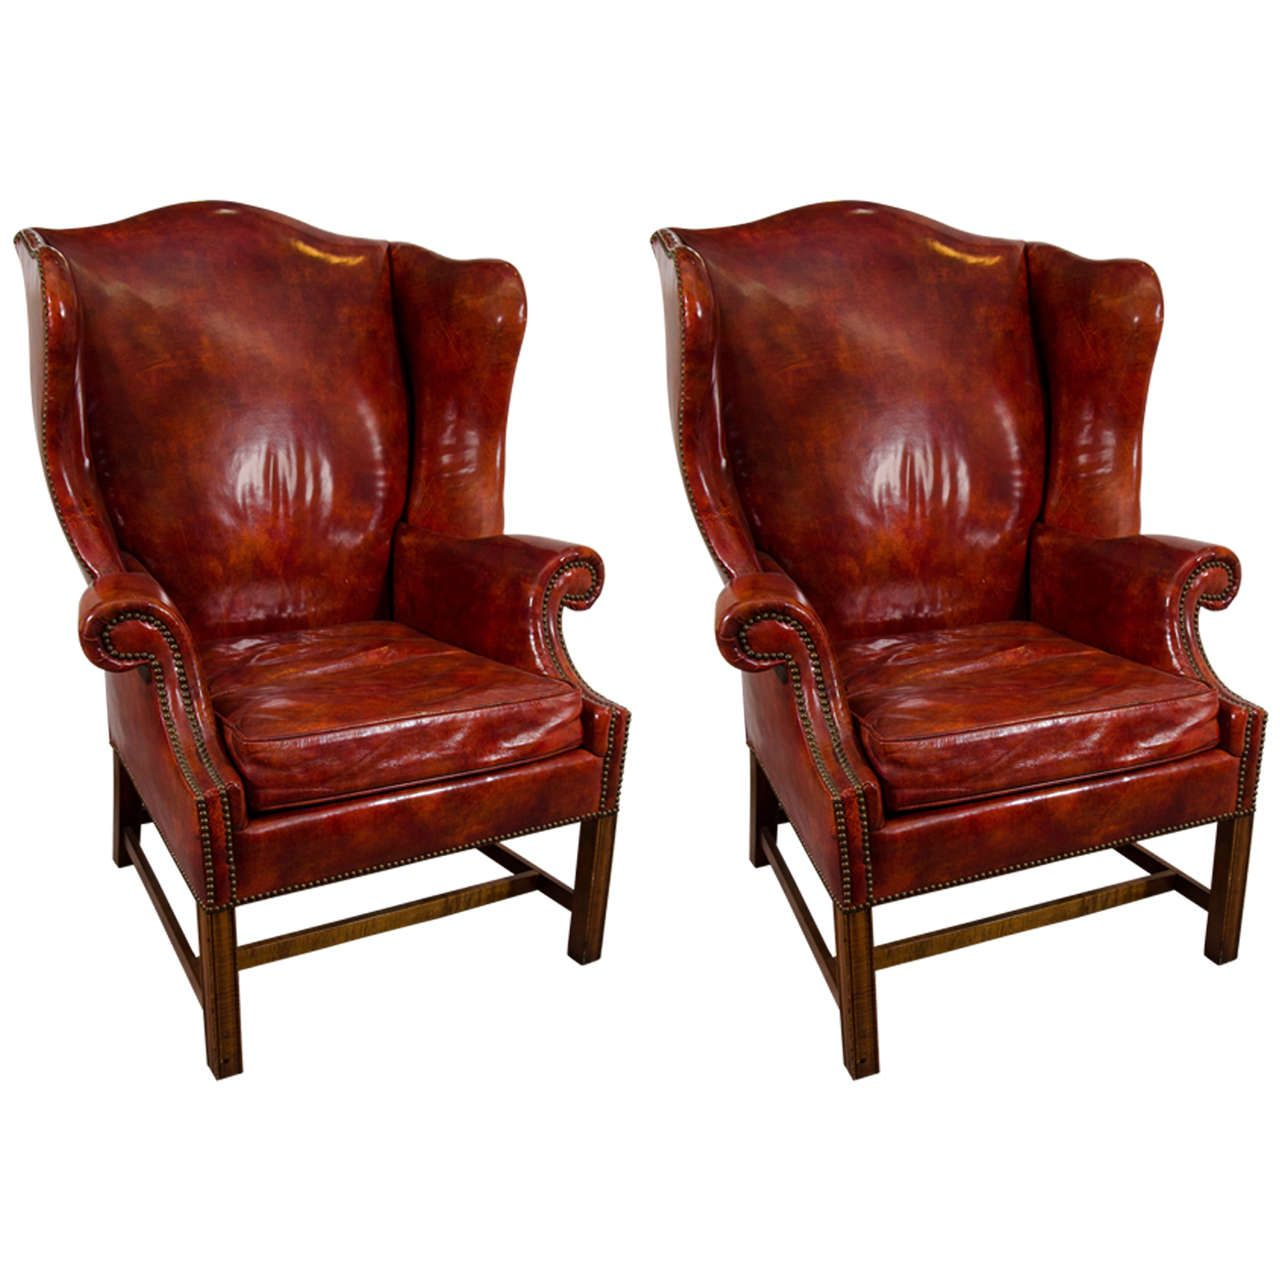 Genial Midcentury Pair Of Burgundy Leather Wing Chairs By Baker | From A Unique  Collection Of Antique And Modern Wingback Chairs At ...